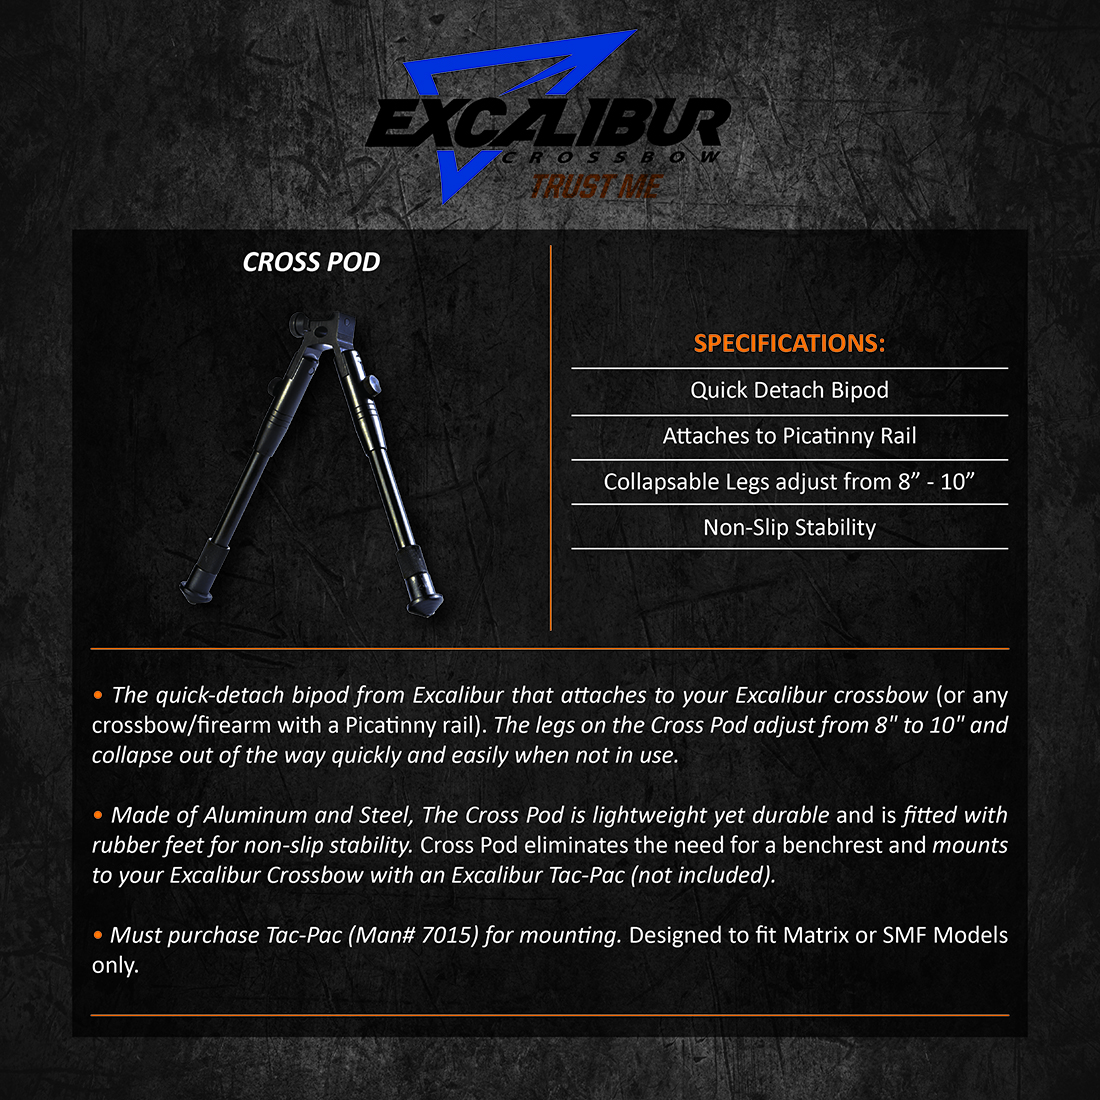 Excalibur_Cross_Pod_Product_Description